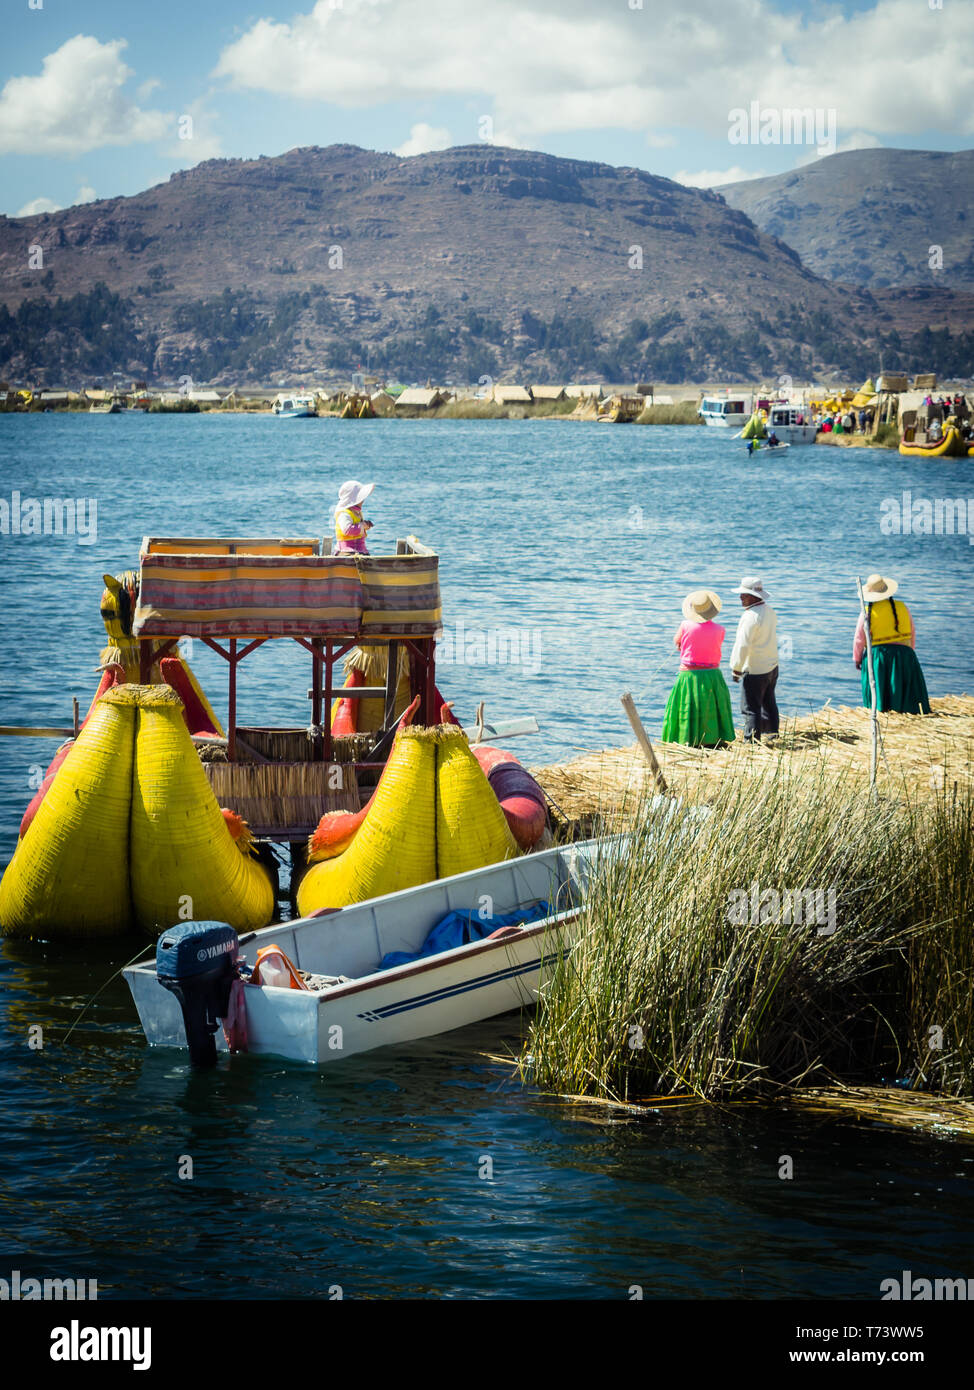 The Uros floating islands in lake Titicaca, Peru. Typical boat and natives - Stock Image